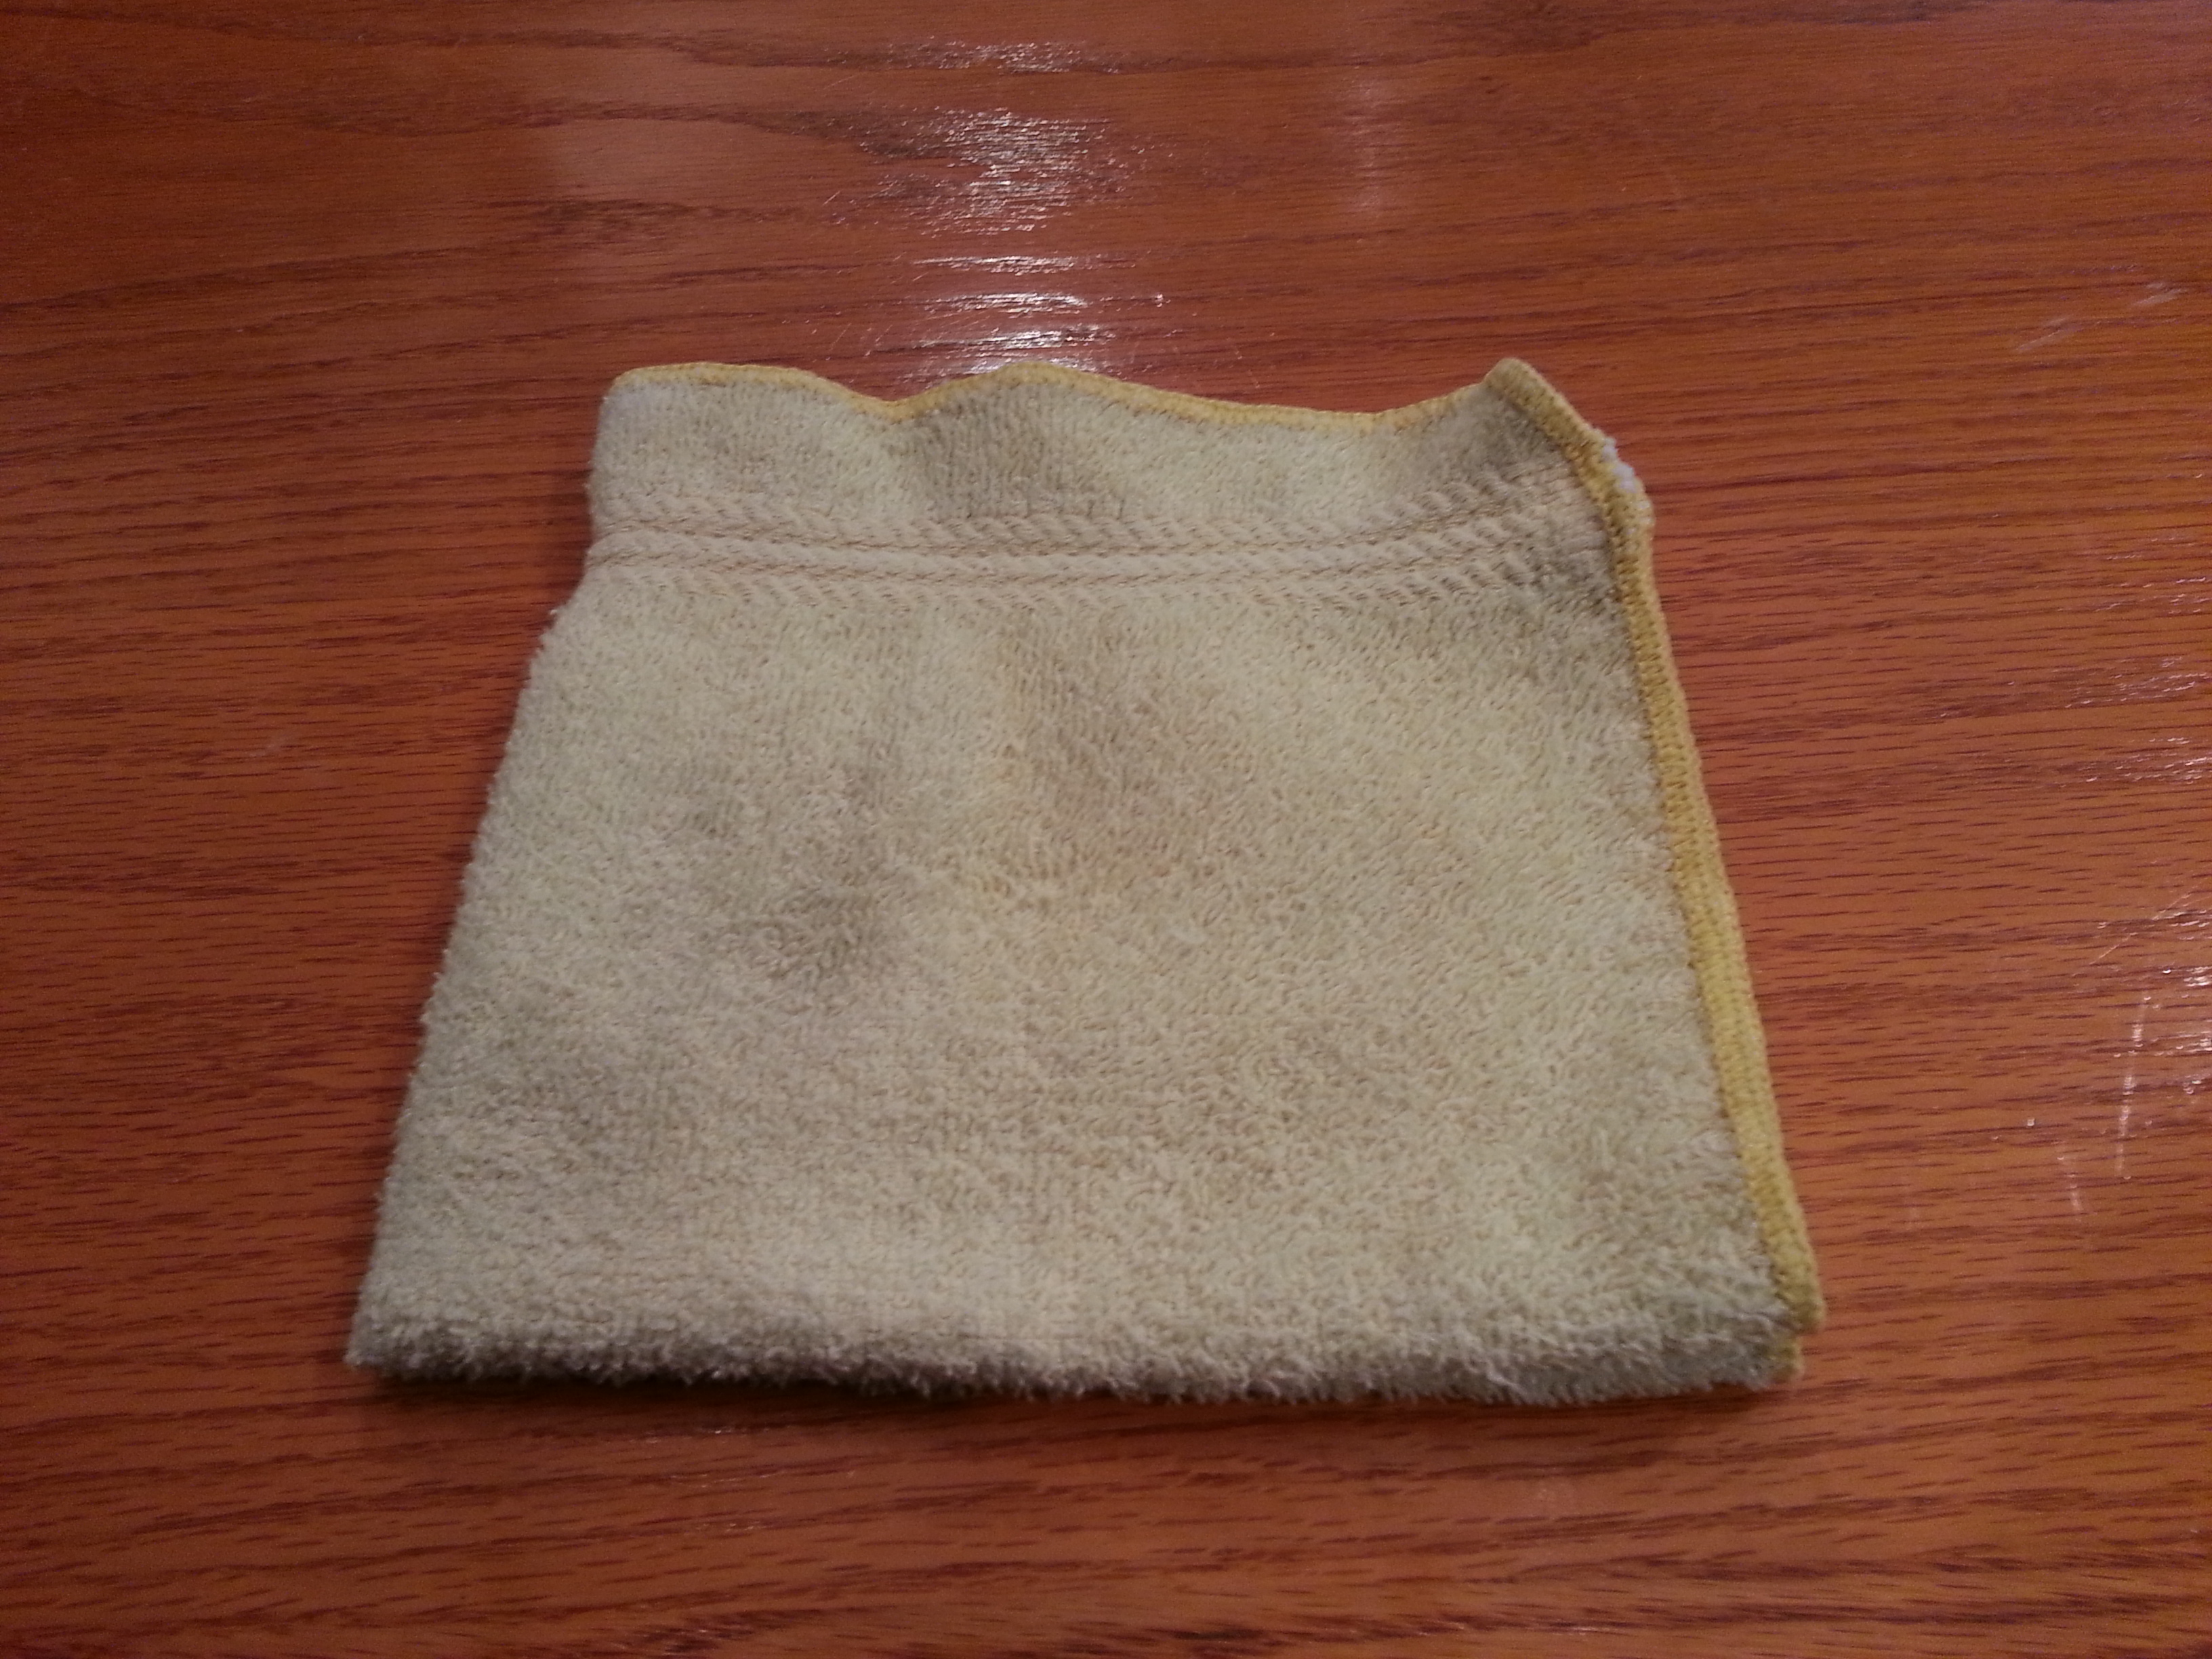 Diy Make A Hanging Soap Pouch Using Only A Washcloth Emmet Street Creations